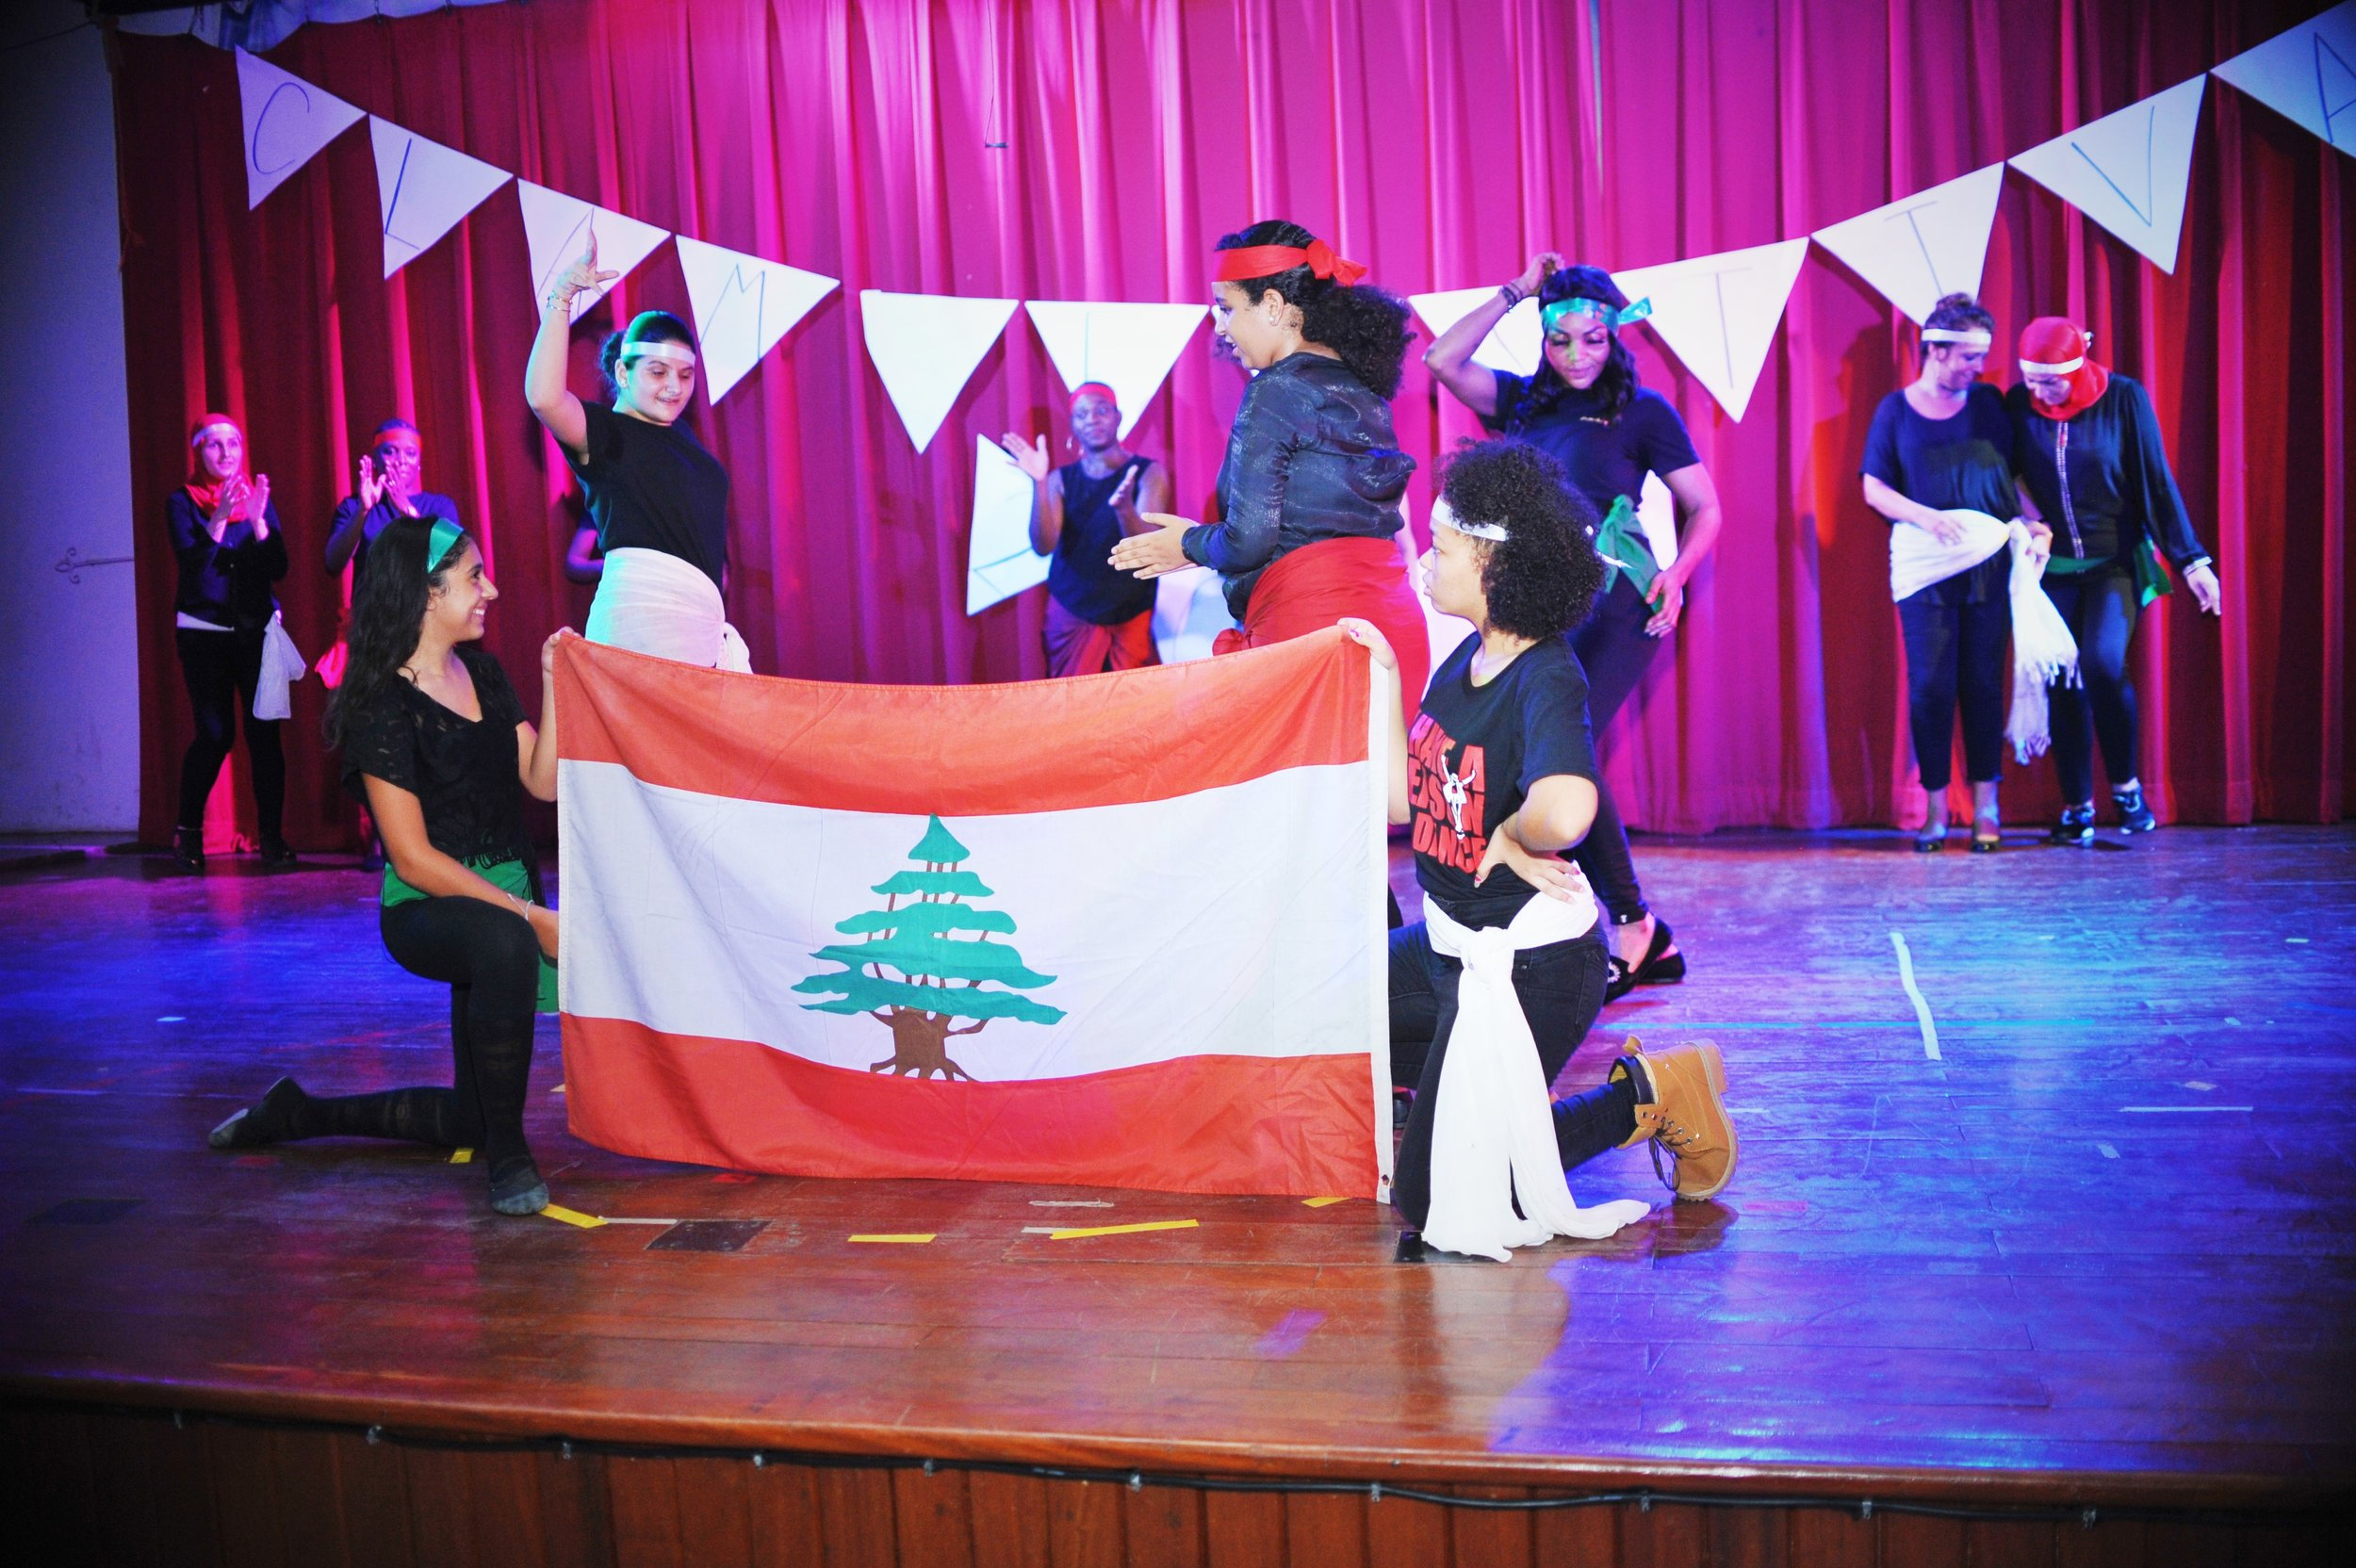 A true celebration of UNITY in DIVERSITY, students, staff, and parents all came together to present a Lebanese dance that had us all laughing and clapping along!